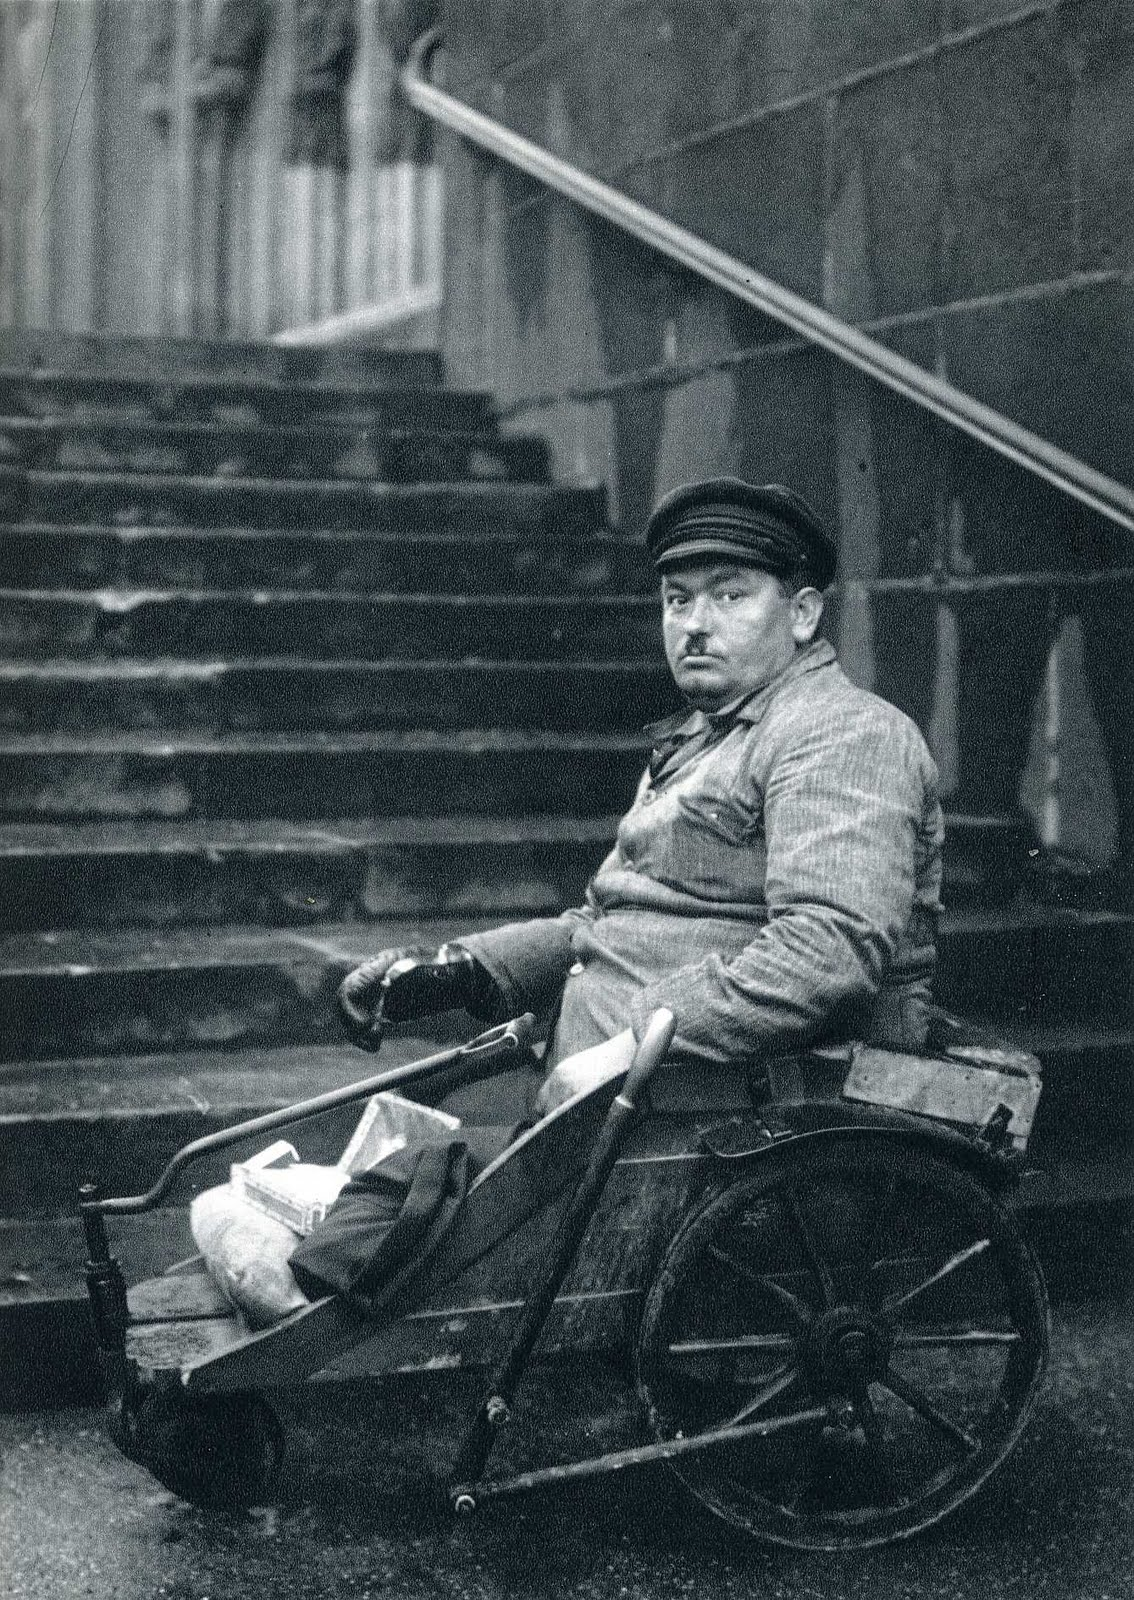 The Photography Files August Sander